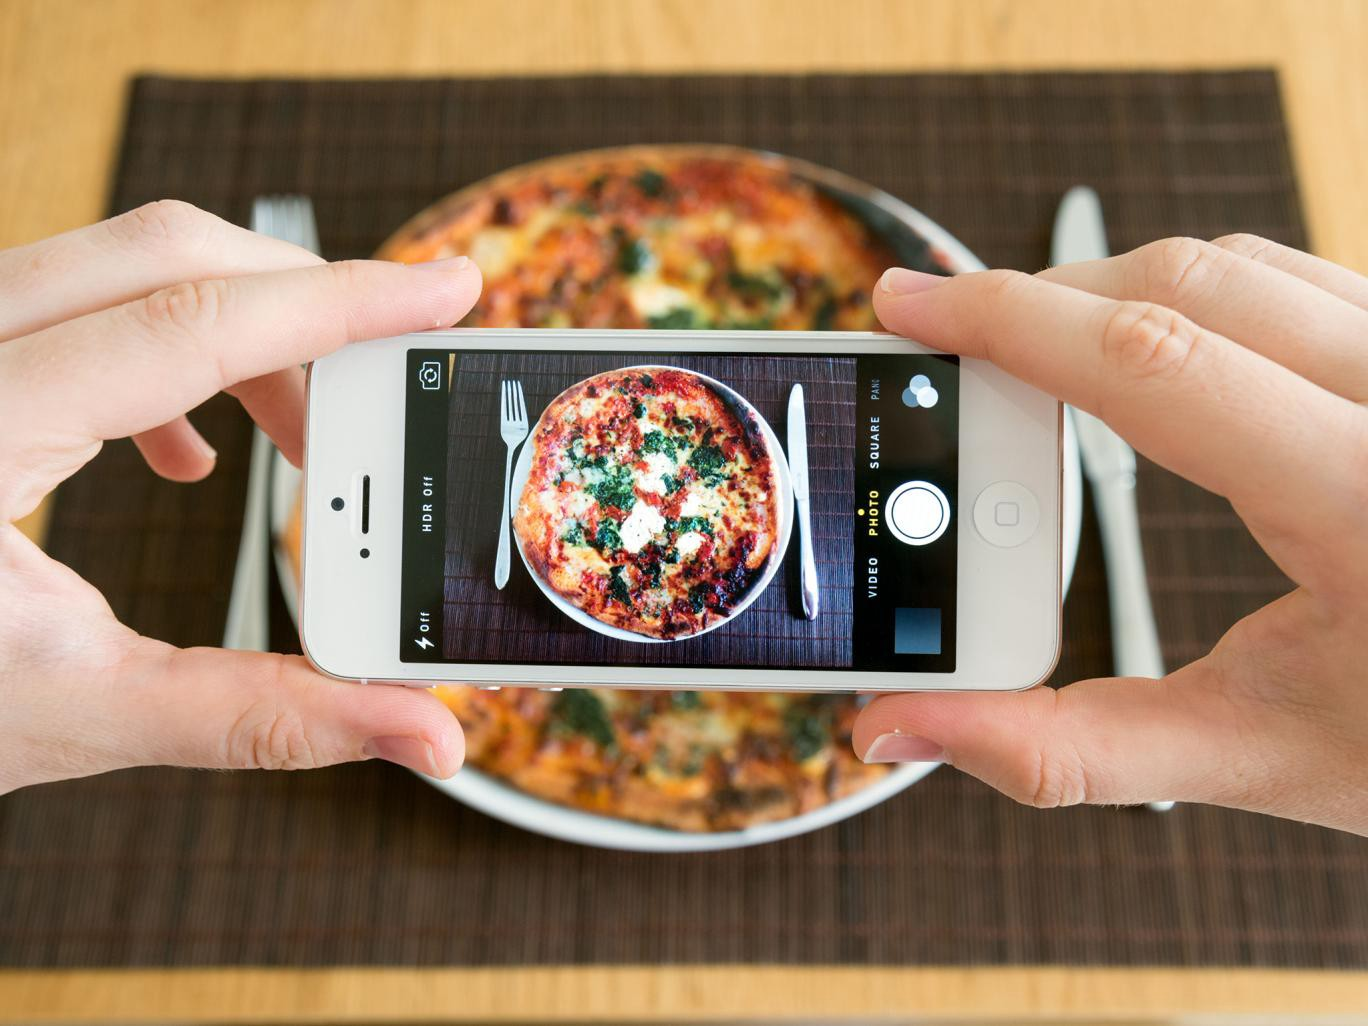 How to make online recipe videos on your smartphone forumfinder Choice Image